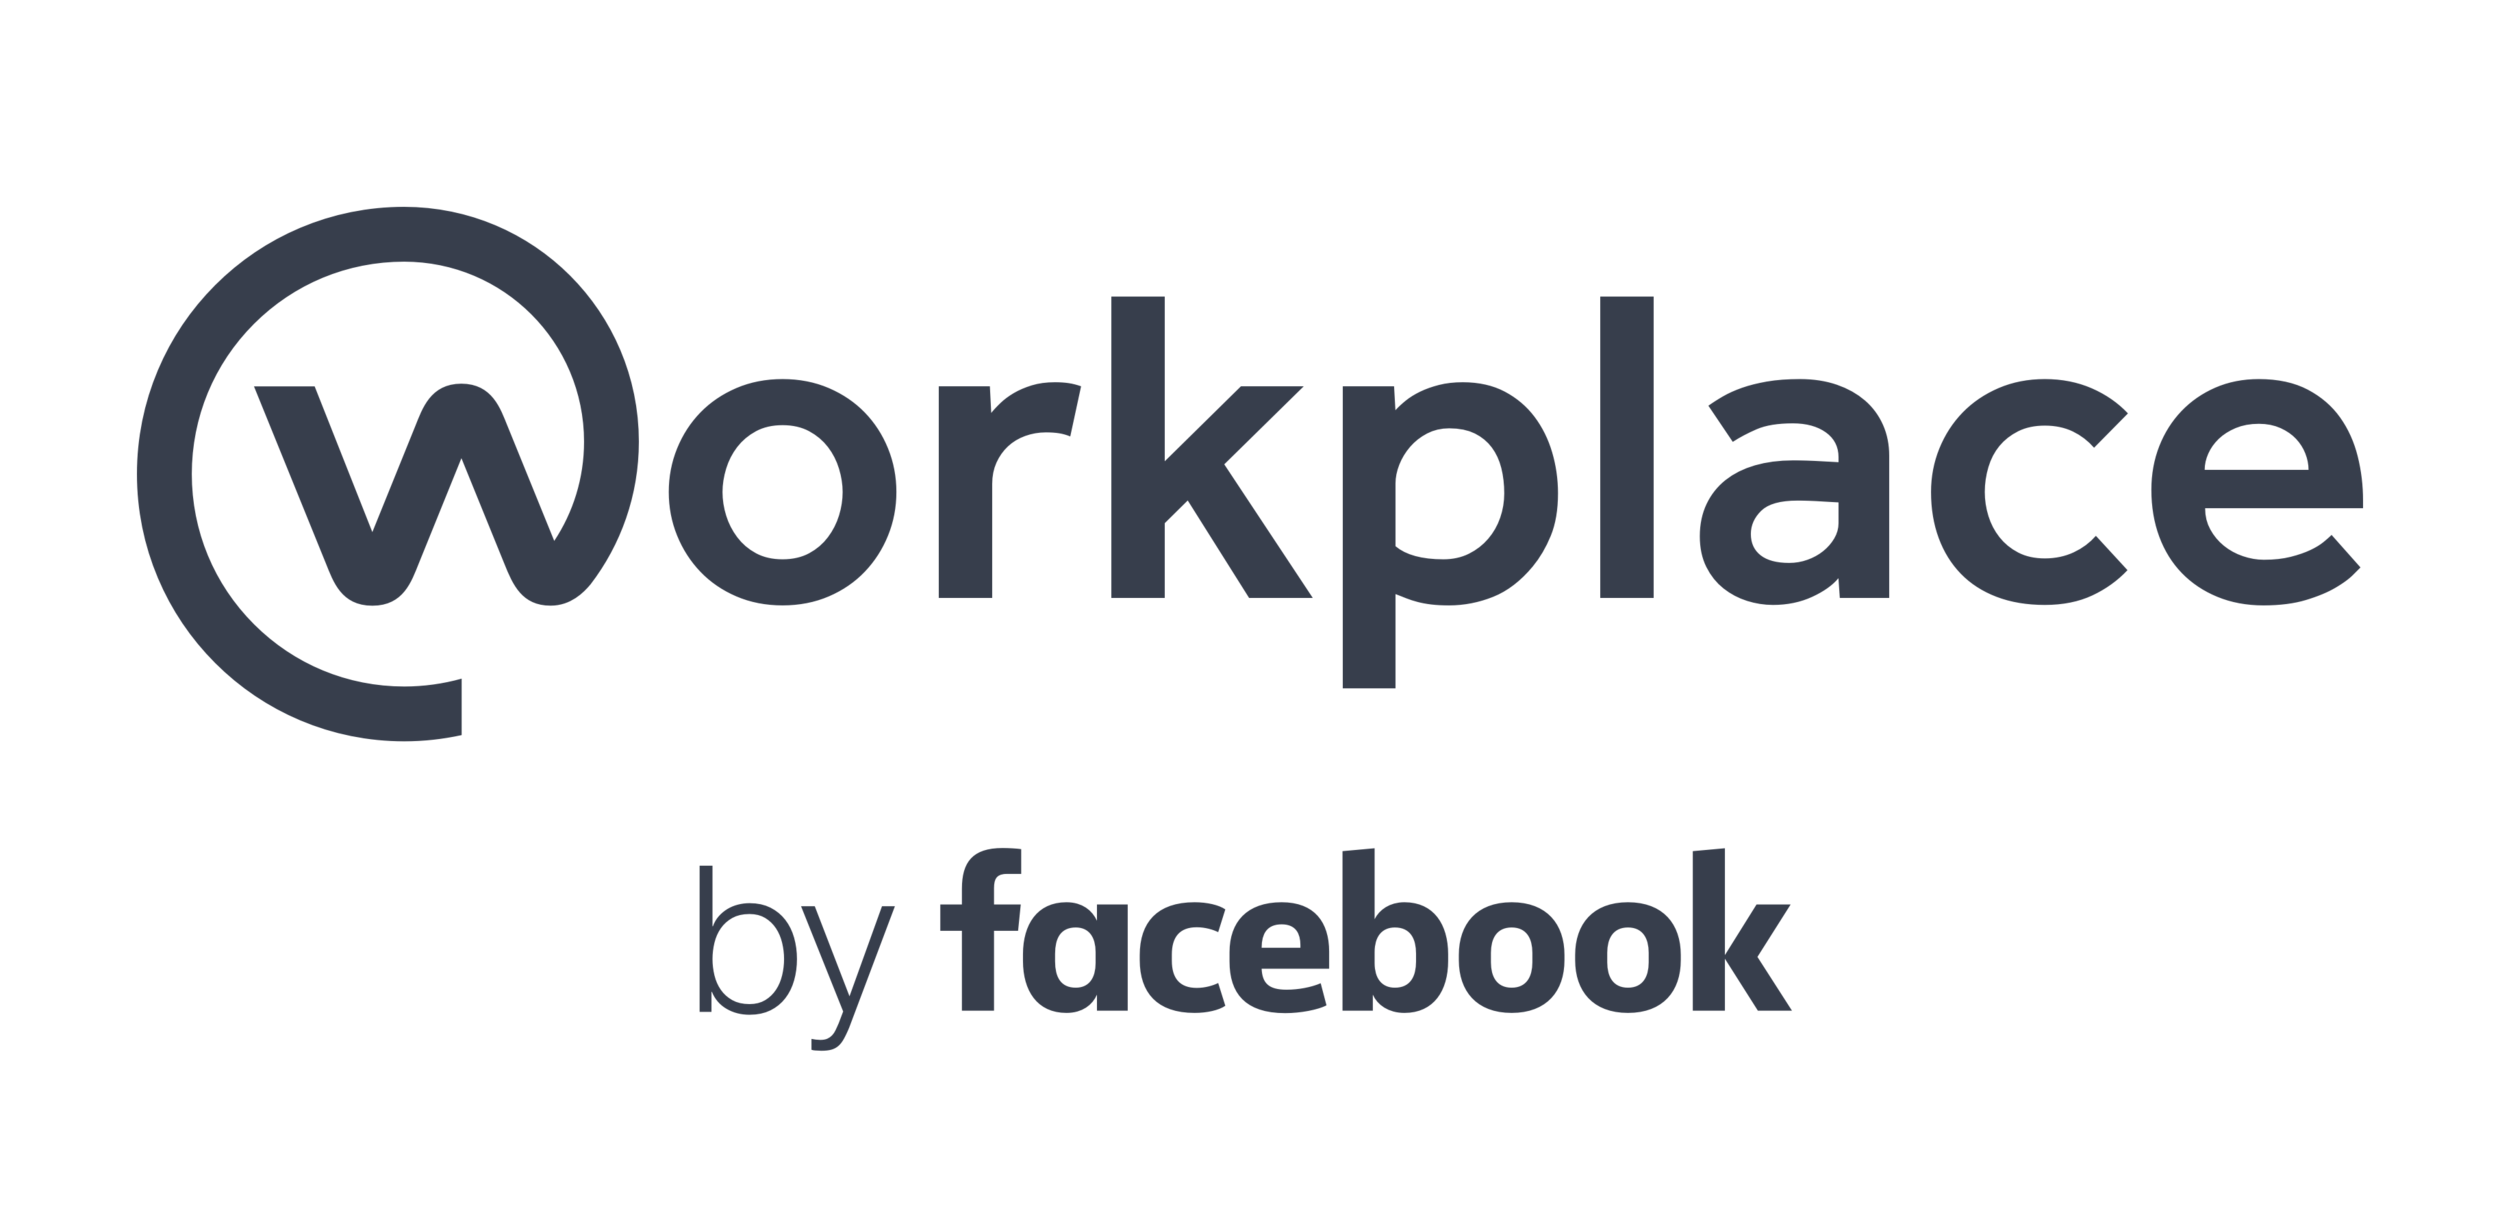 Workplace_Logotype_Lock-up_Two-Line_Grey_RGB.png